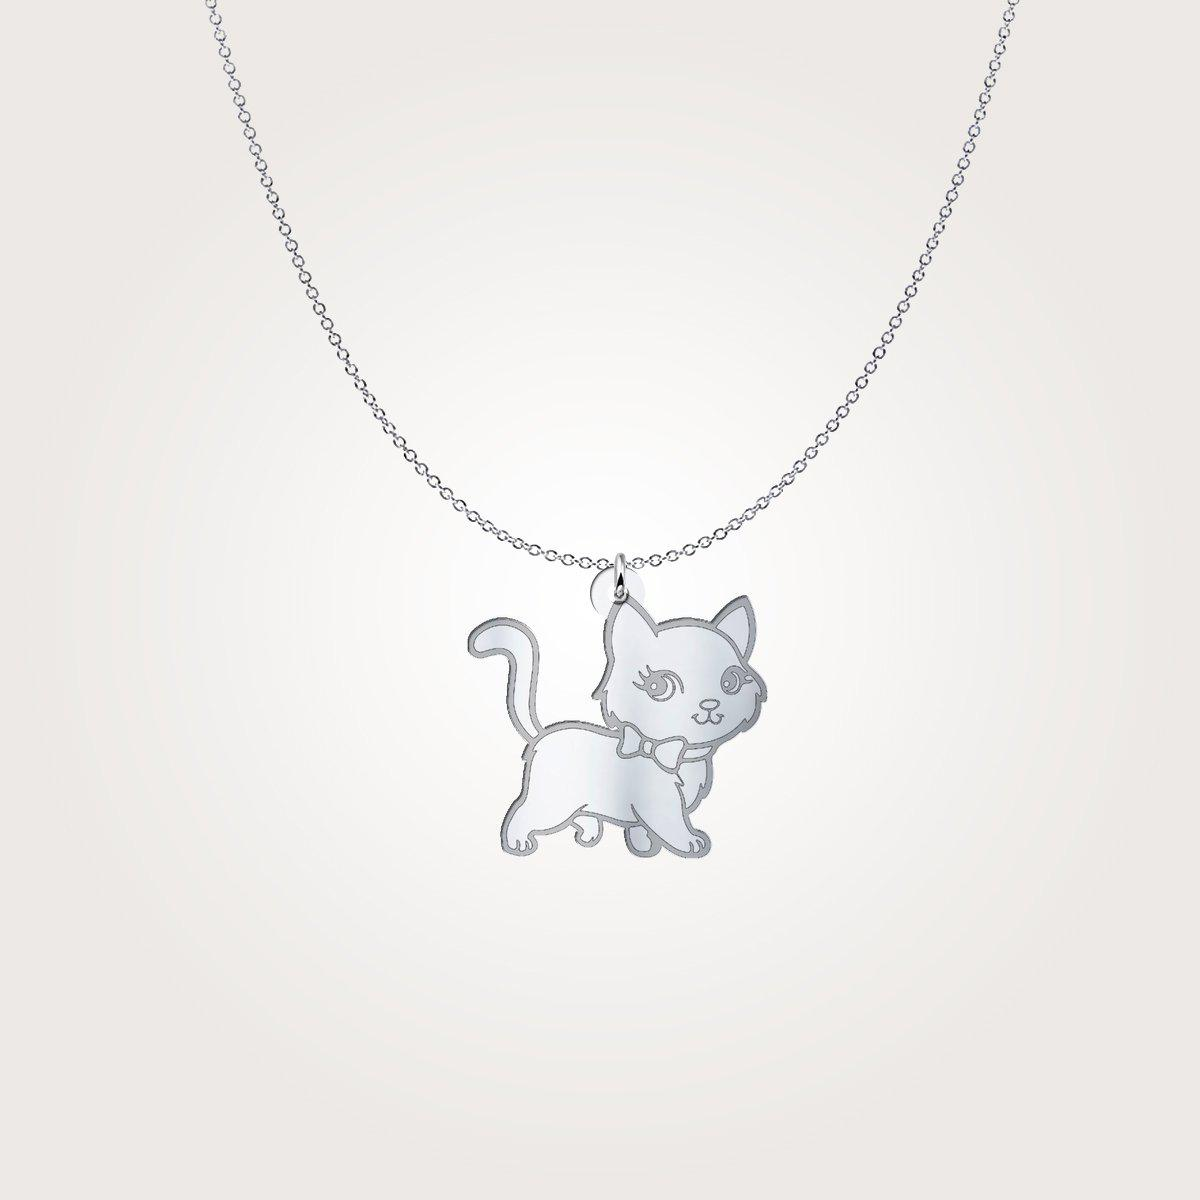 Shopeholic:Cartoon Cat - Sterling Silver Necklace